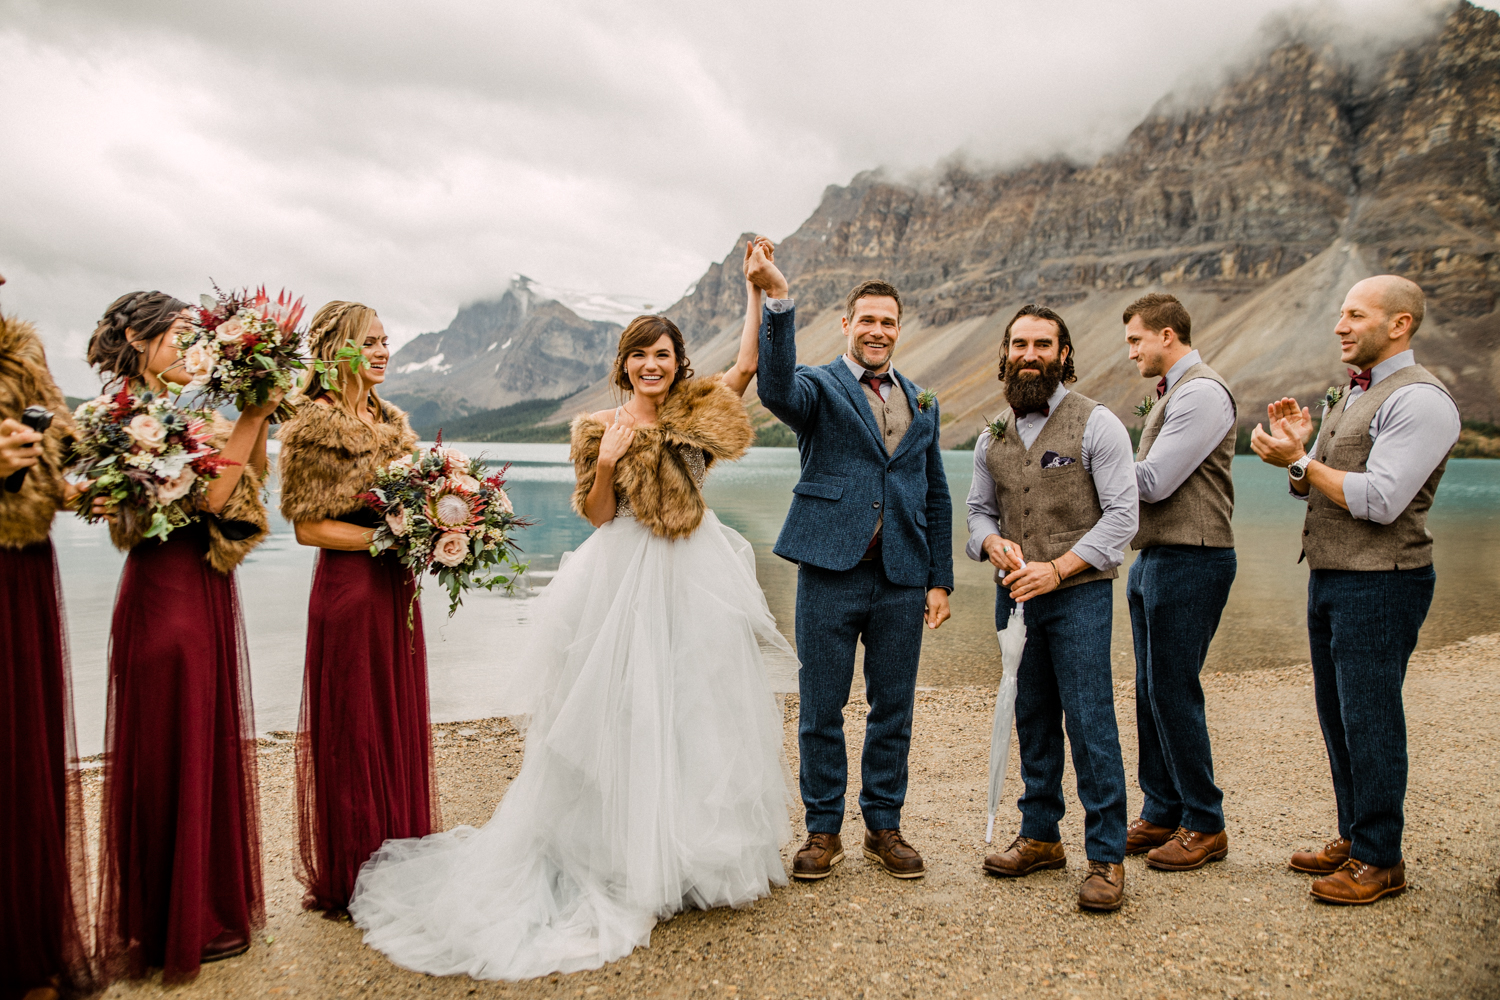 Wedding at Bow Lake in Banff National Park